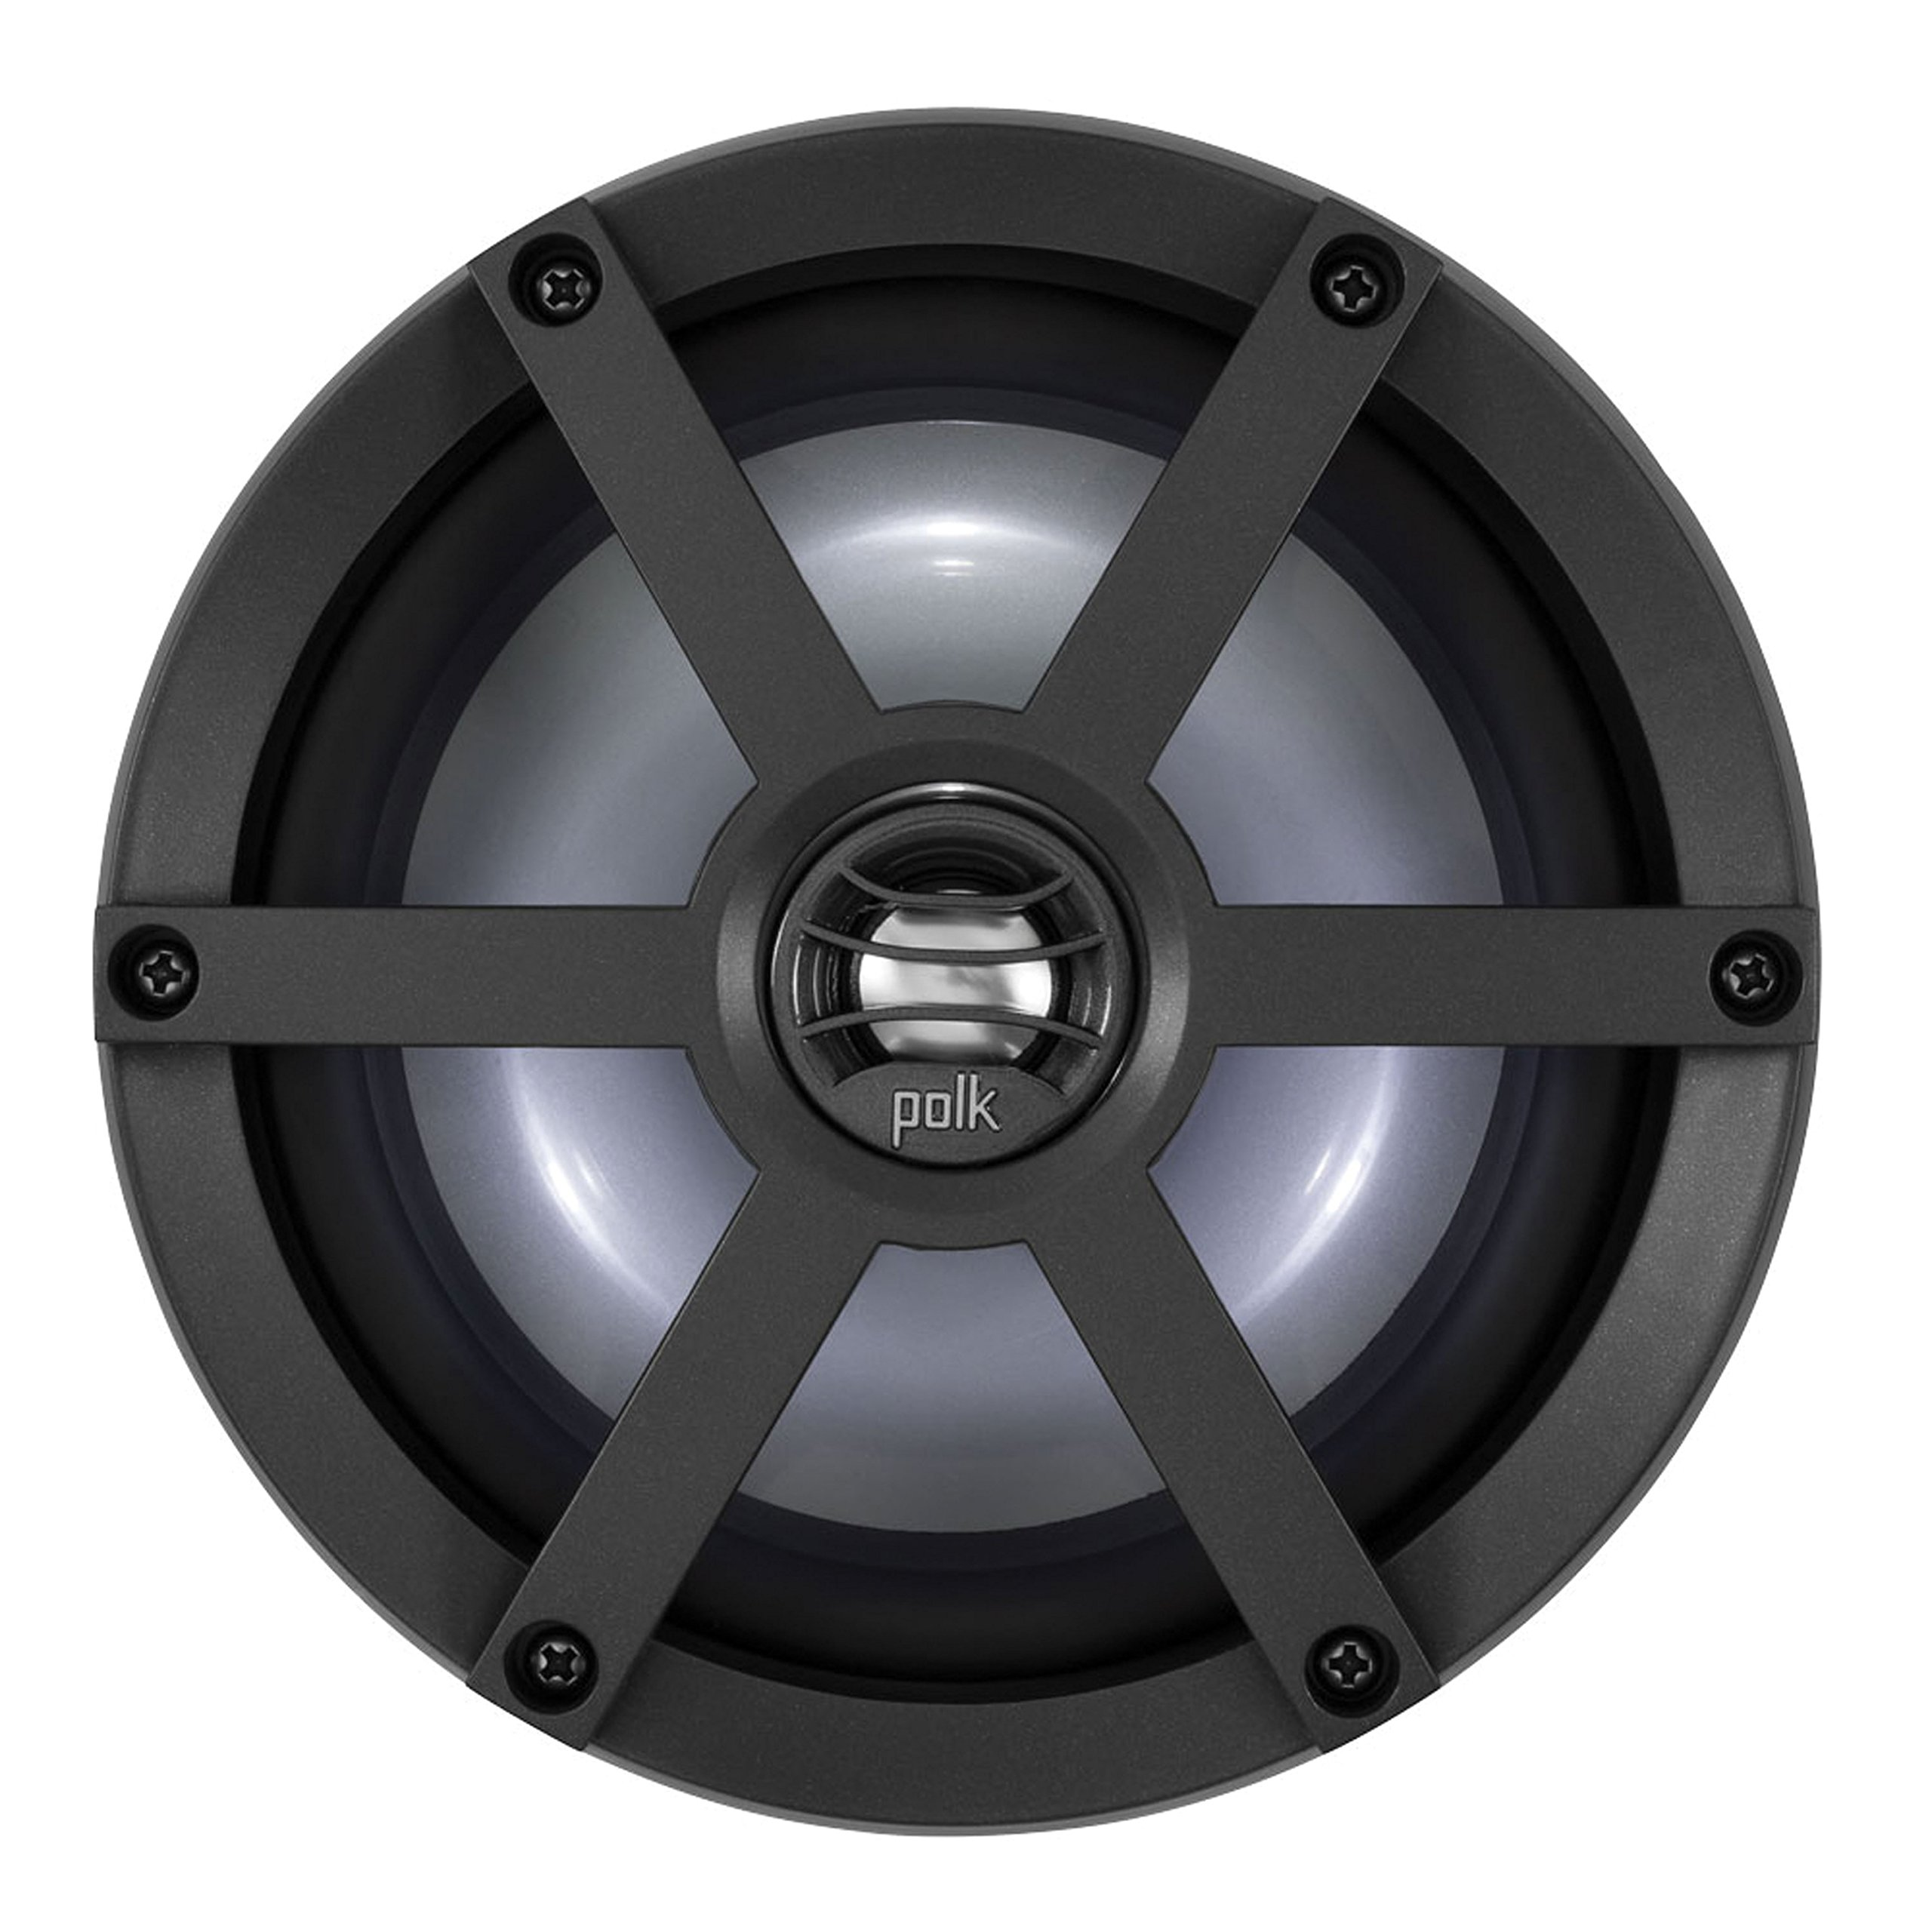 POLK AUDIO UM650SRTL Coaxial Speaker Kit with Sport Grille and LED Light Ring - 6.5'',2 Pack by Polk Audio